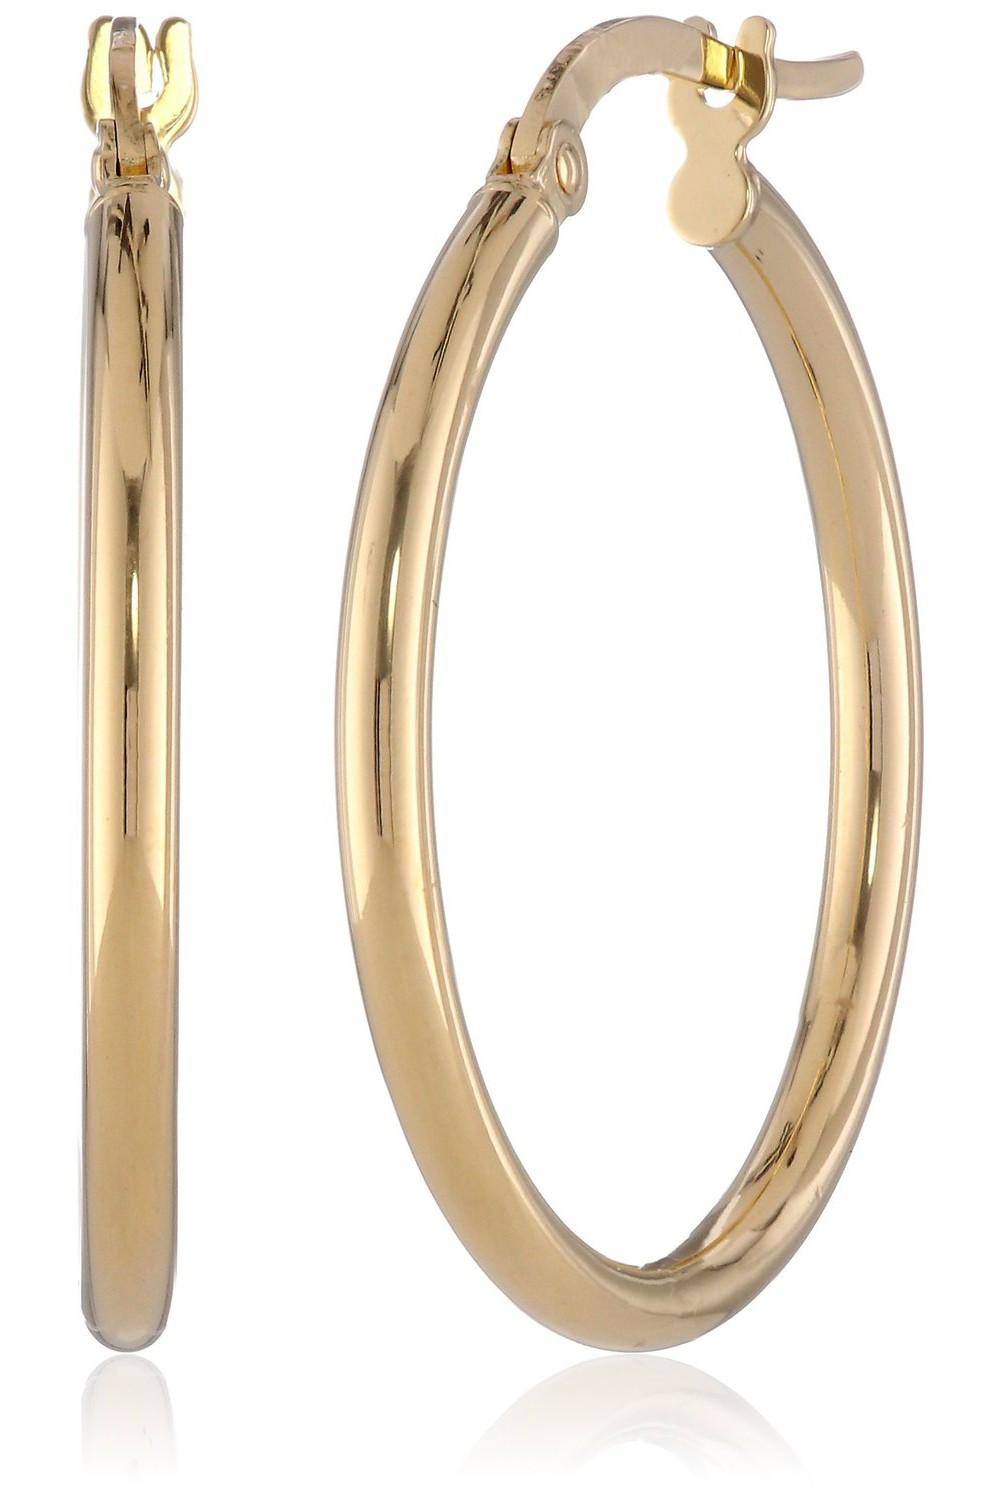 14k Yellow Gold Italian Hoop Earrings Visuall Co